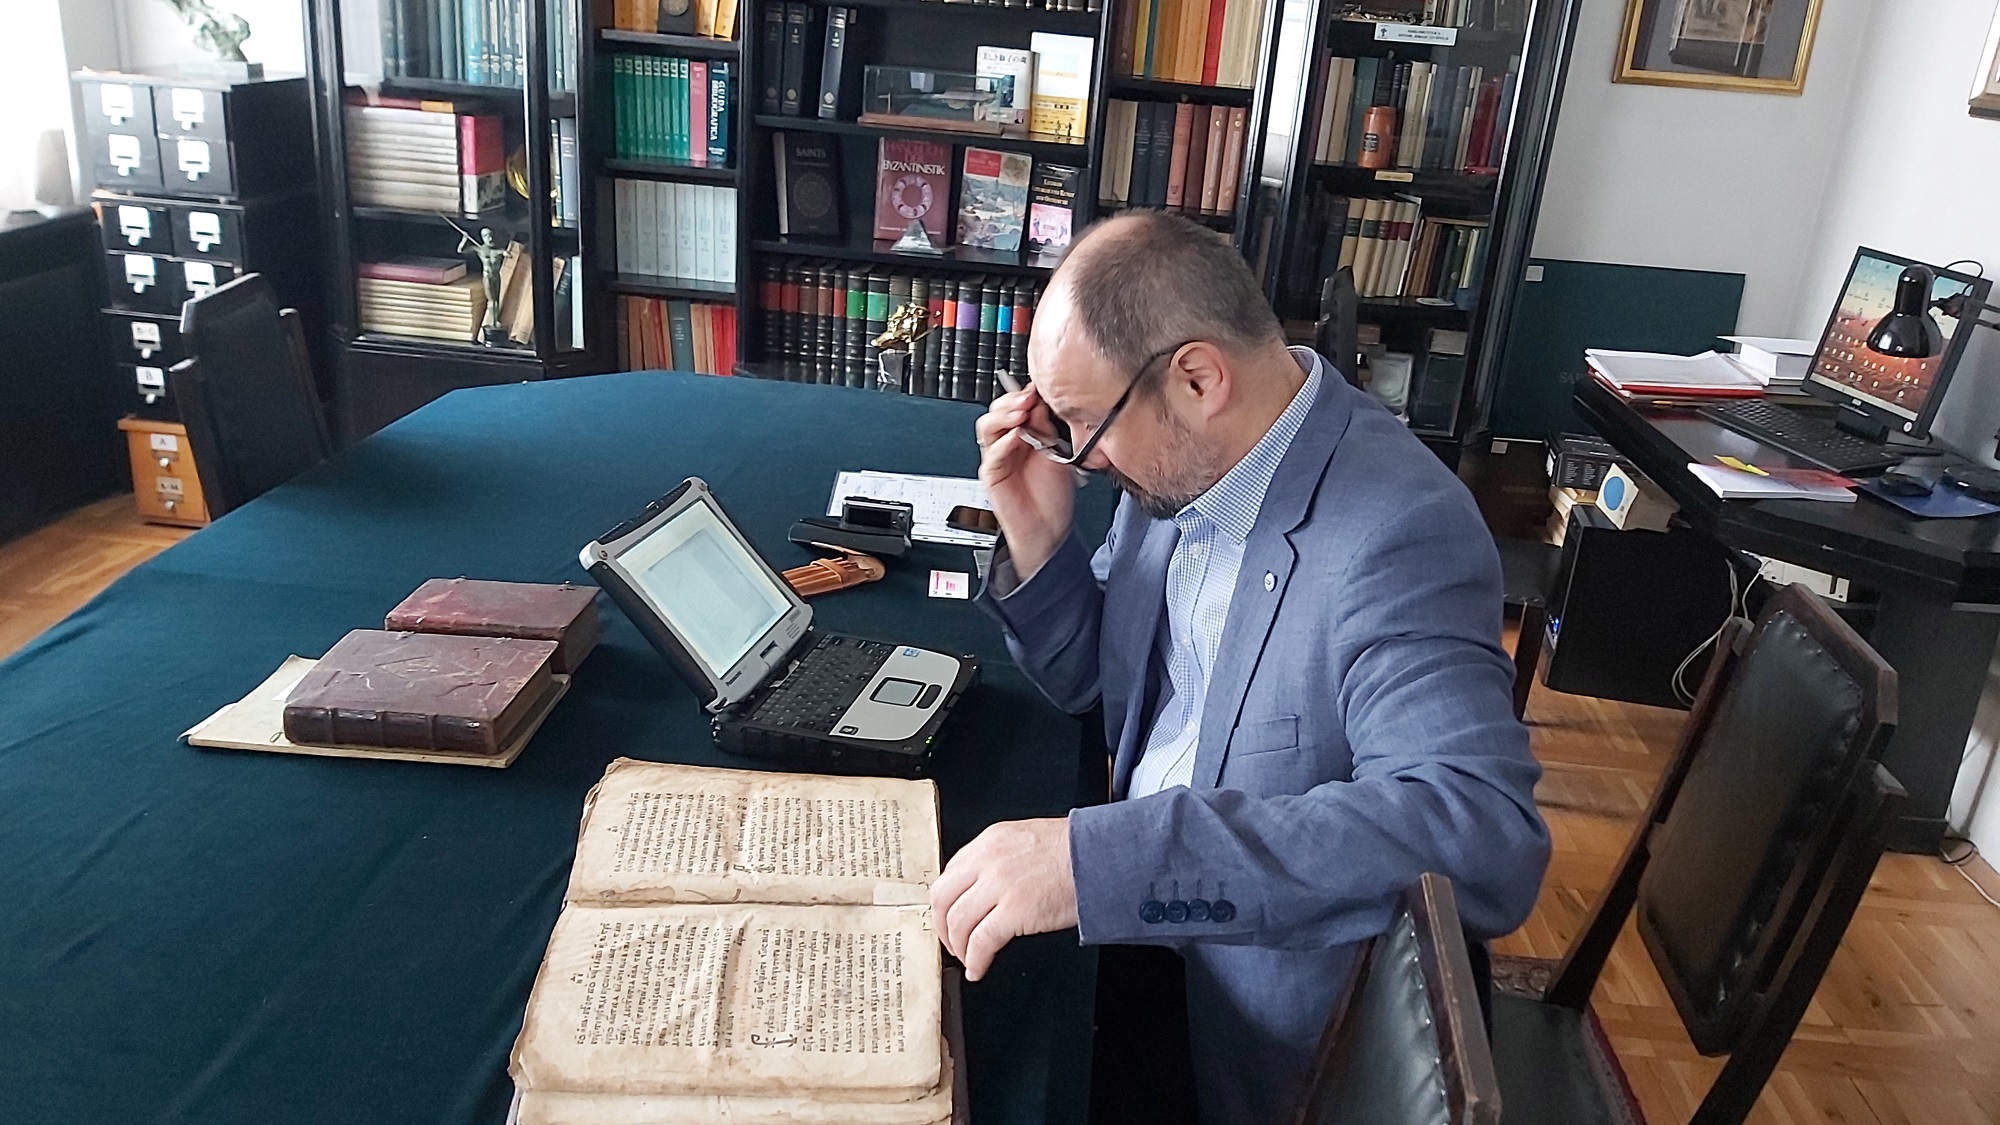 A Polish Researcher Enjoying Easy Access to Cyrillic and Greek Texts in Sofia